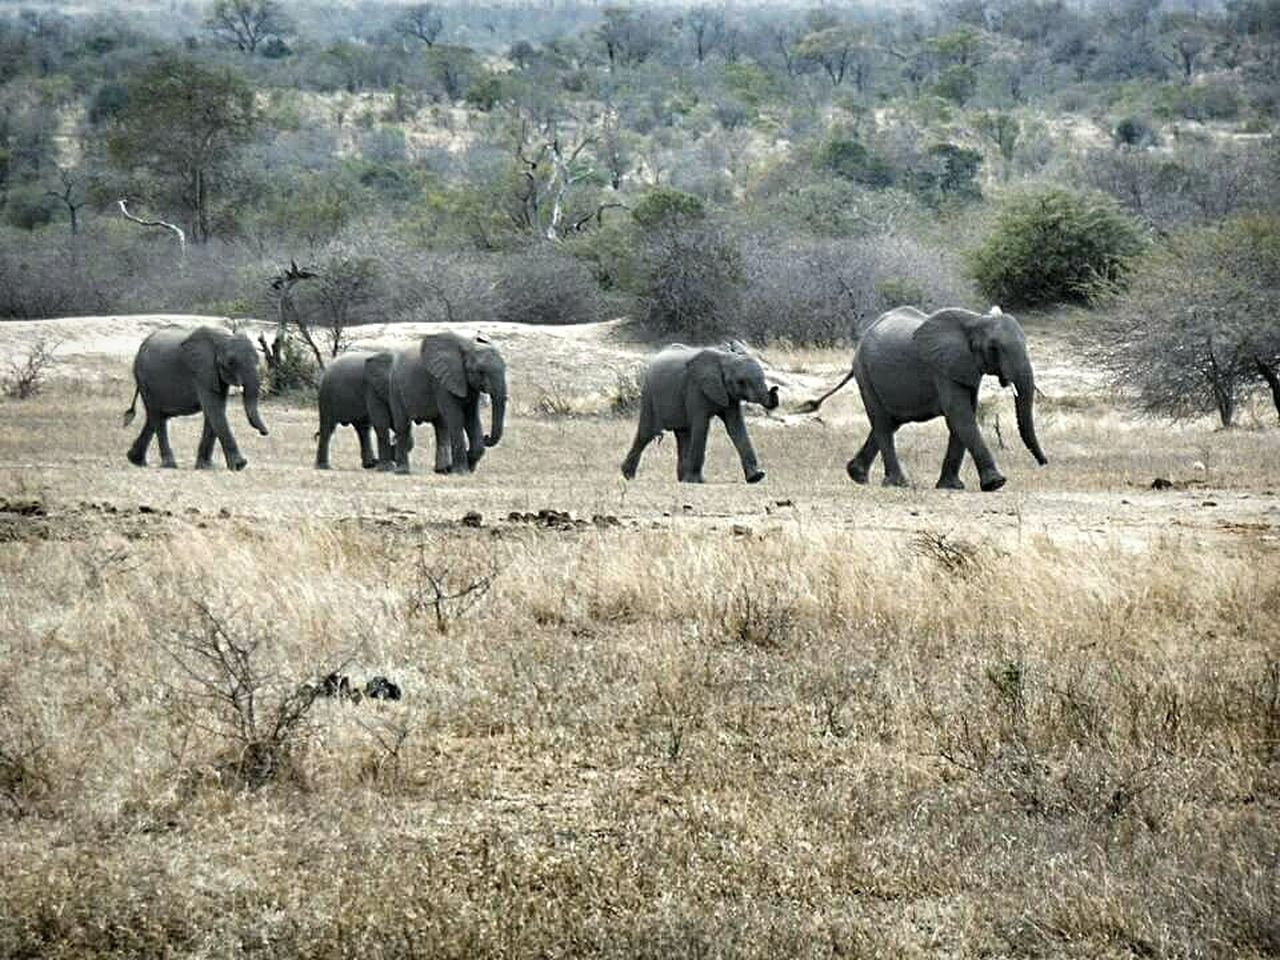 elephant, animals in the wild, animal themes, mammal, animal wildlife, nature, safari animals, no people, day, outdoors, landscape, grass, african elephant, young animal, tree, elephant calf